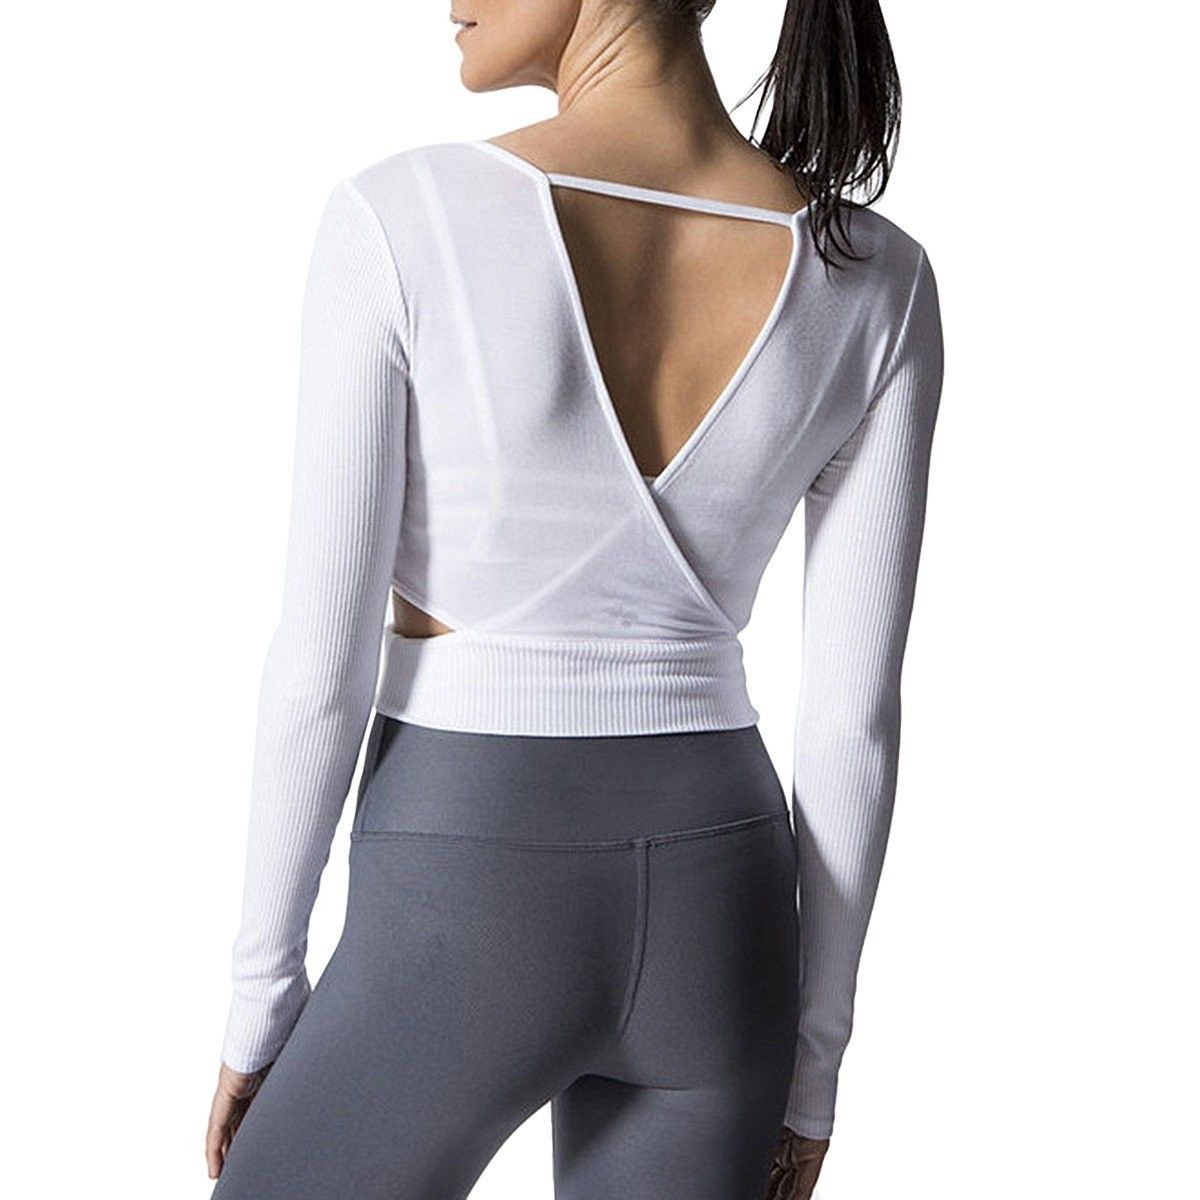 Women's Activewear Tops - Backless Hollow Long Sleeve Yoga Shirts - White -  C818DZNG62A Size Tag S(US 0-2) | Active wear tops, Womens activewear tops, Womens  activewear